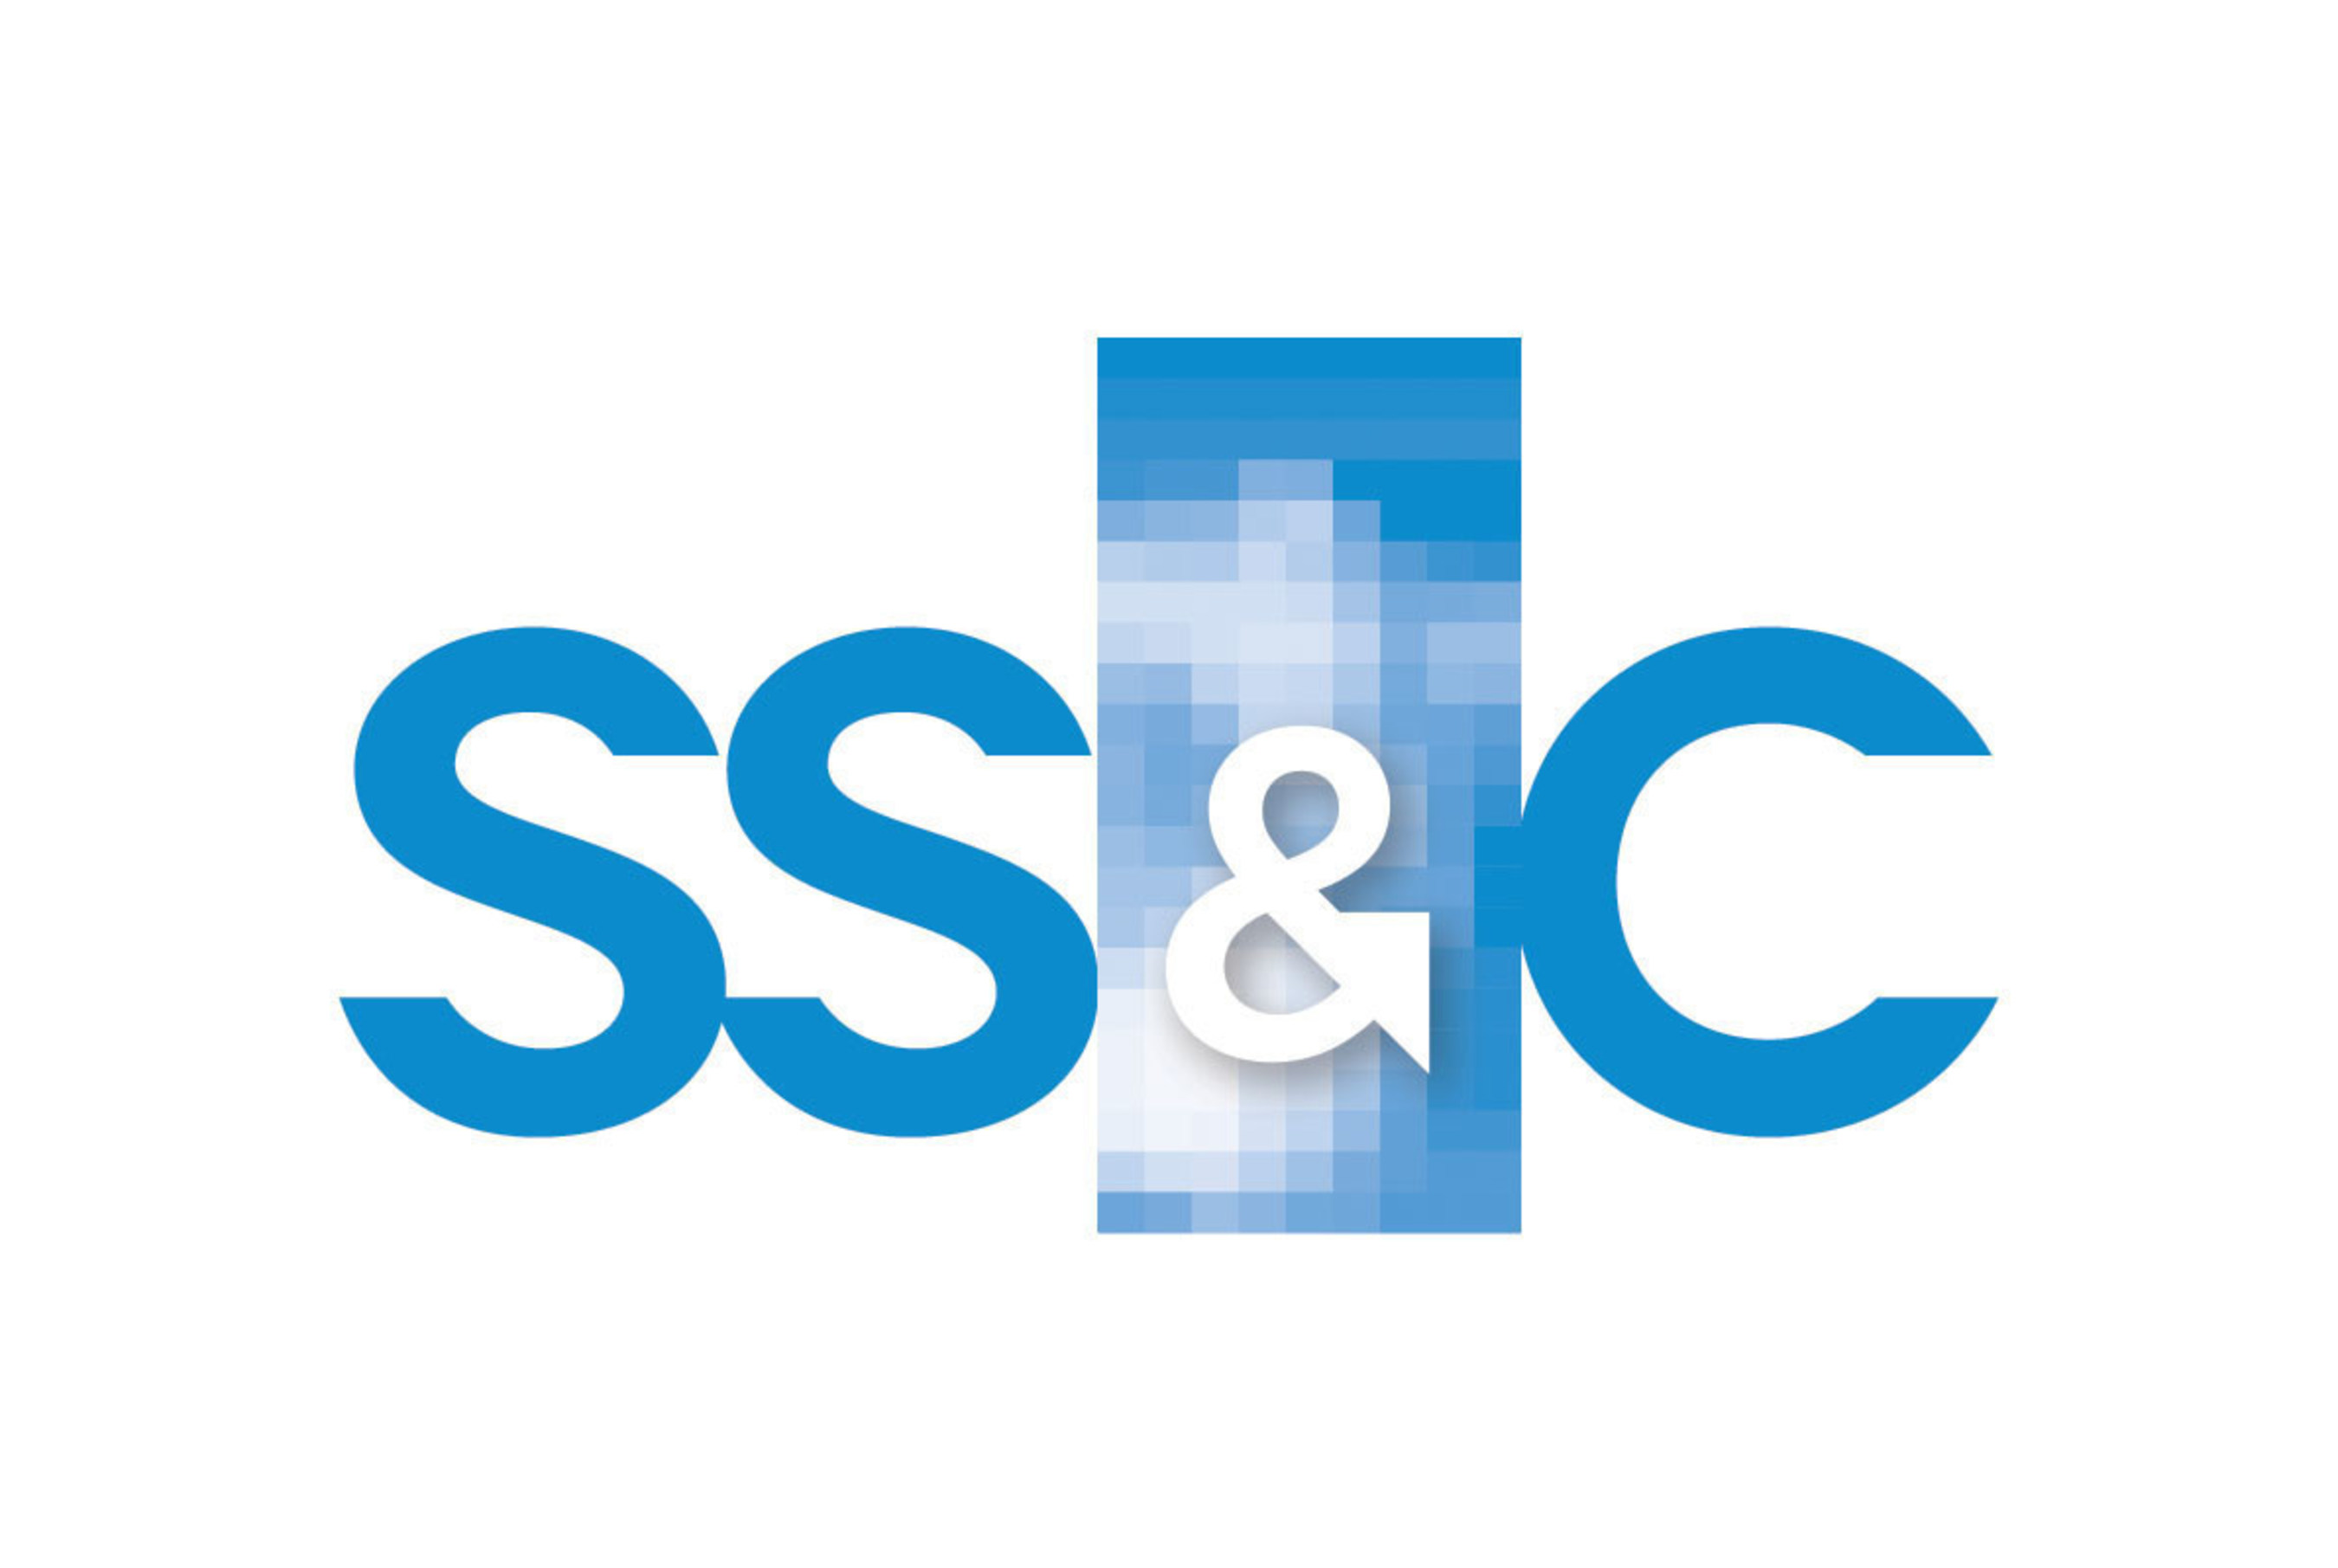 SS&C Technologies Announces Revised Fourth Quarter and 2015 Earnings Date